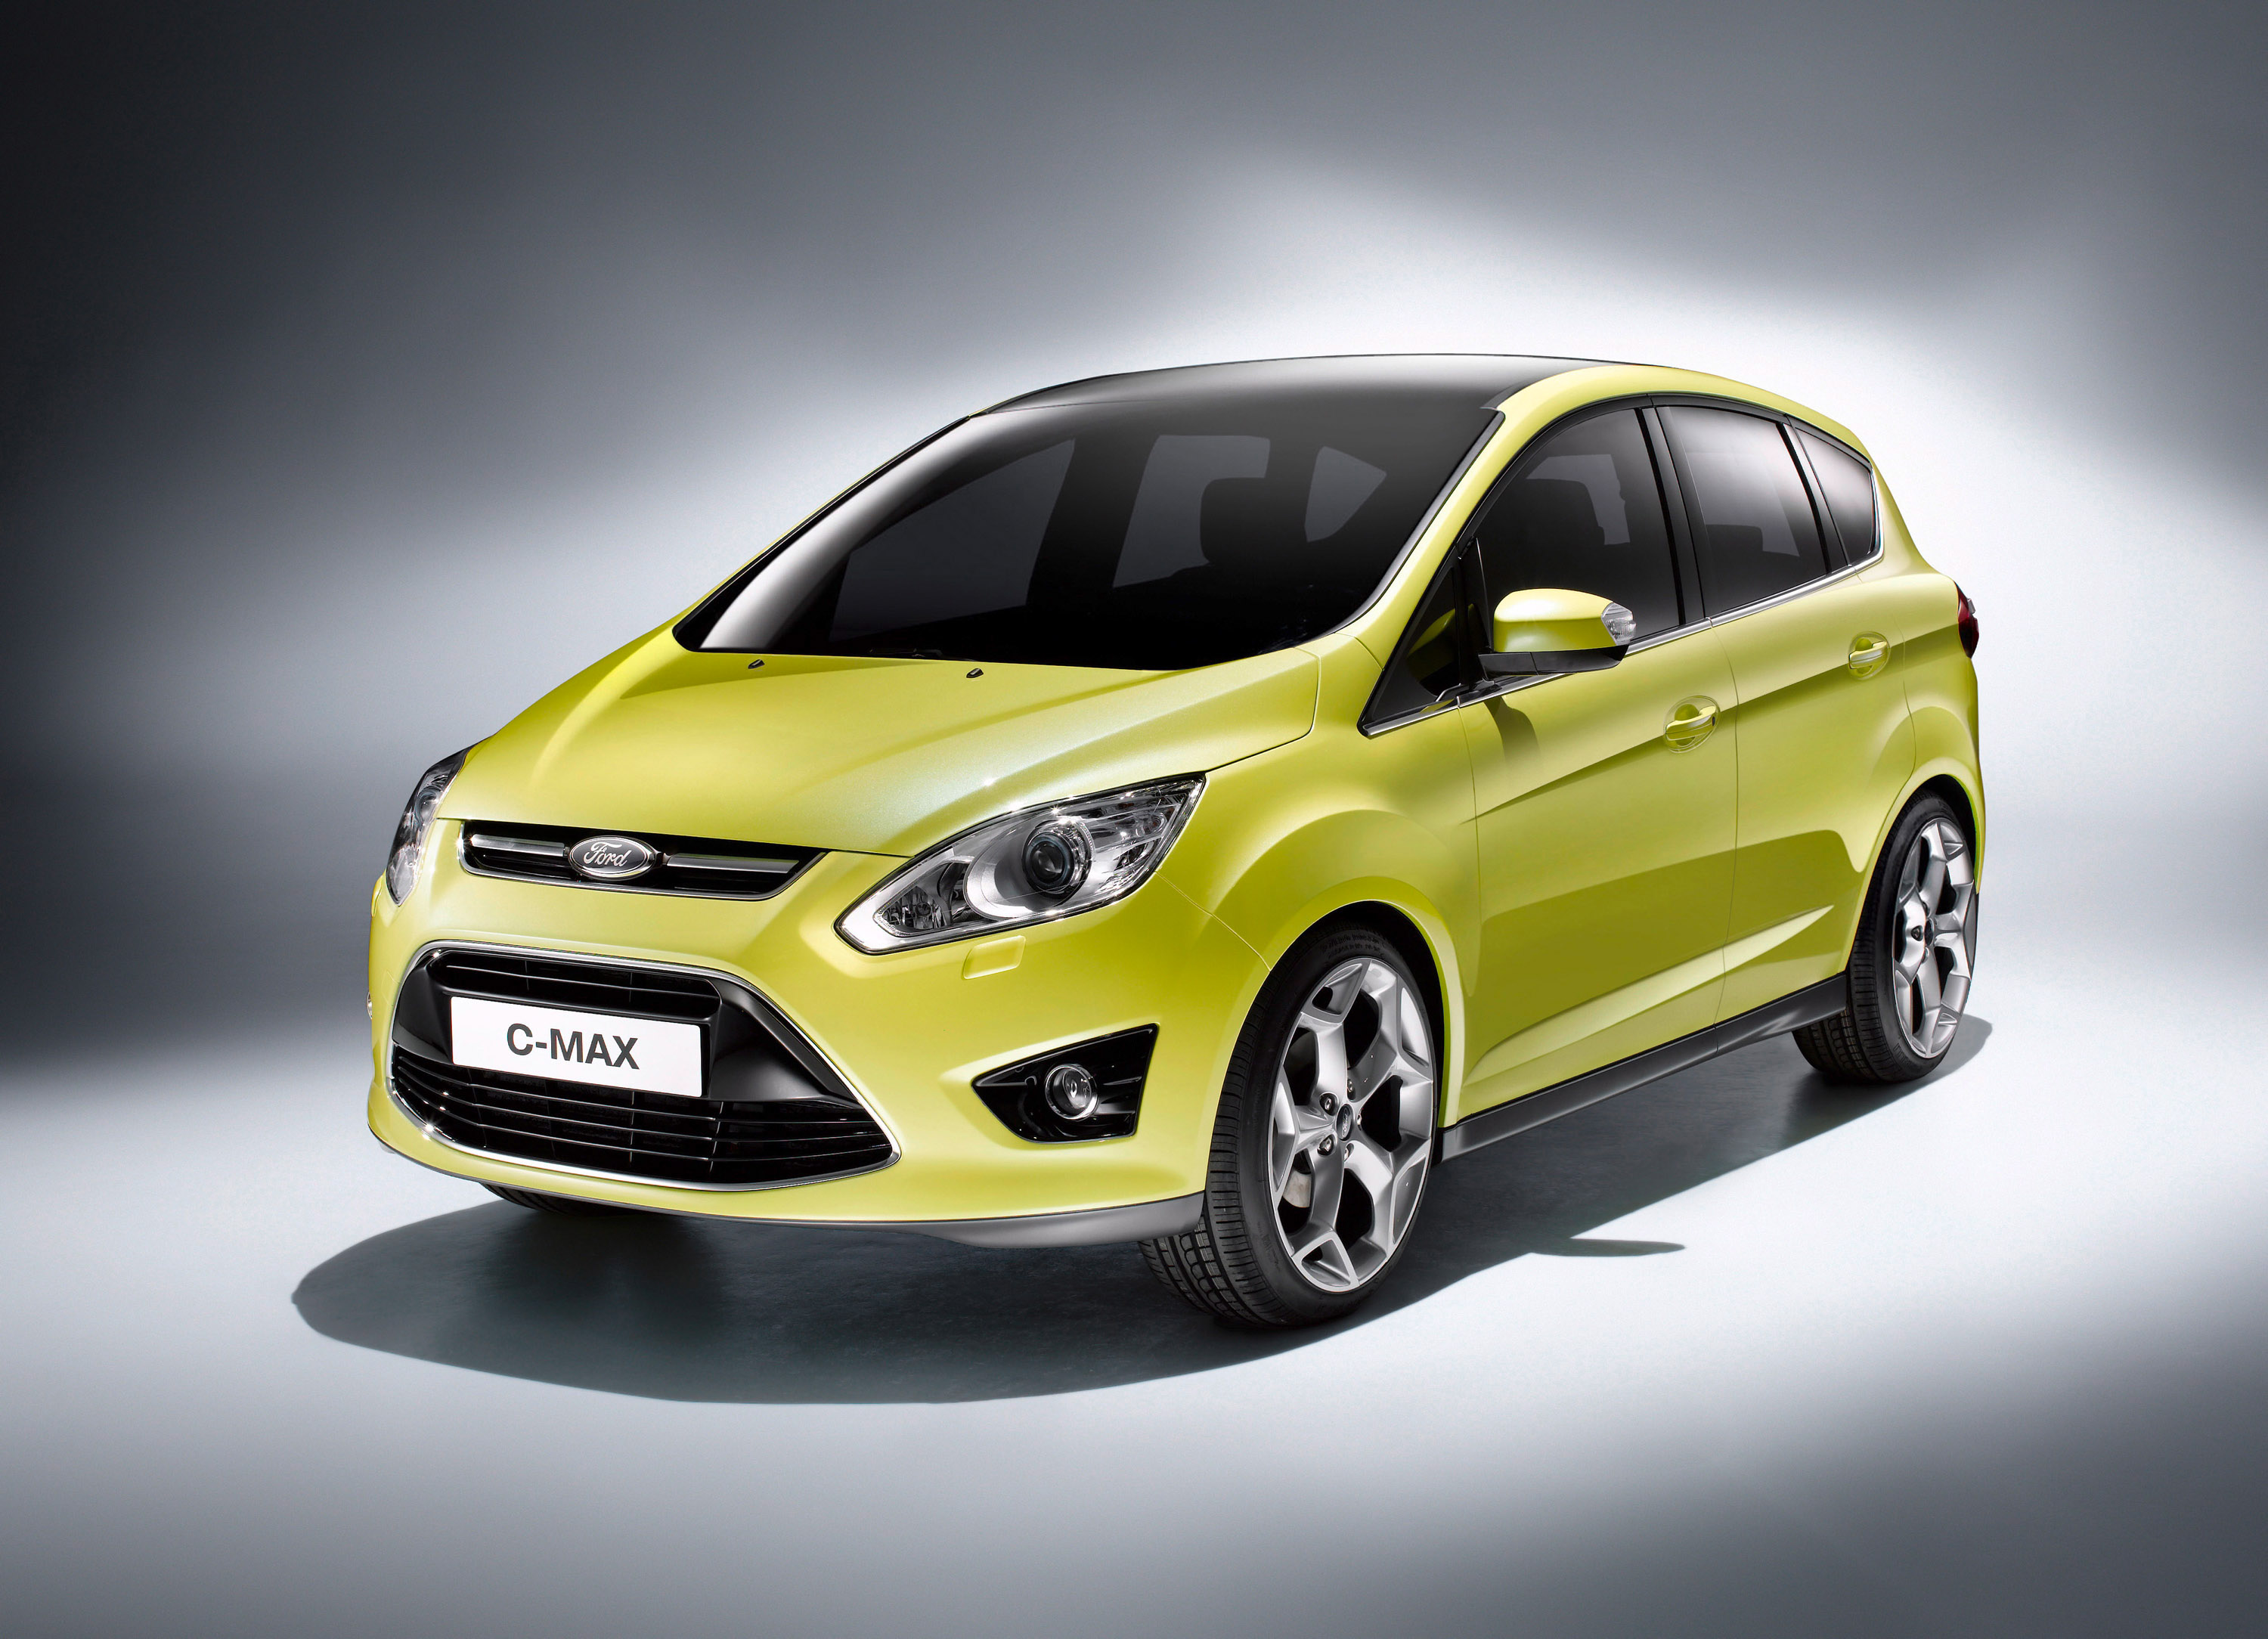 2010 Ford C-Max #21